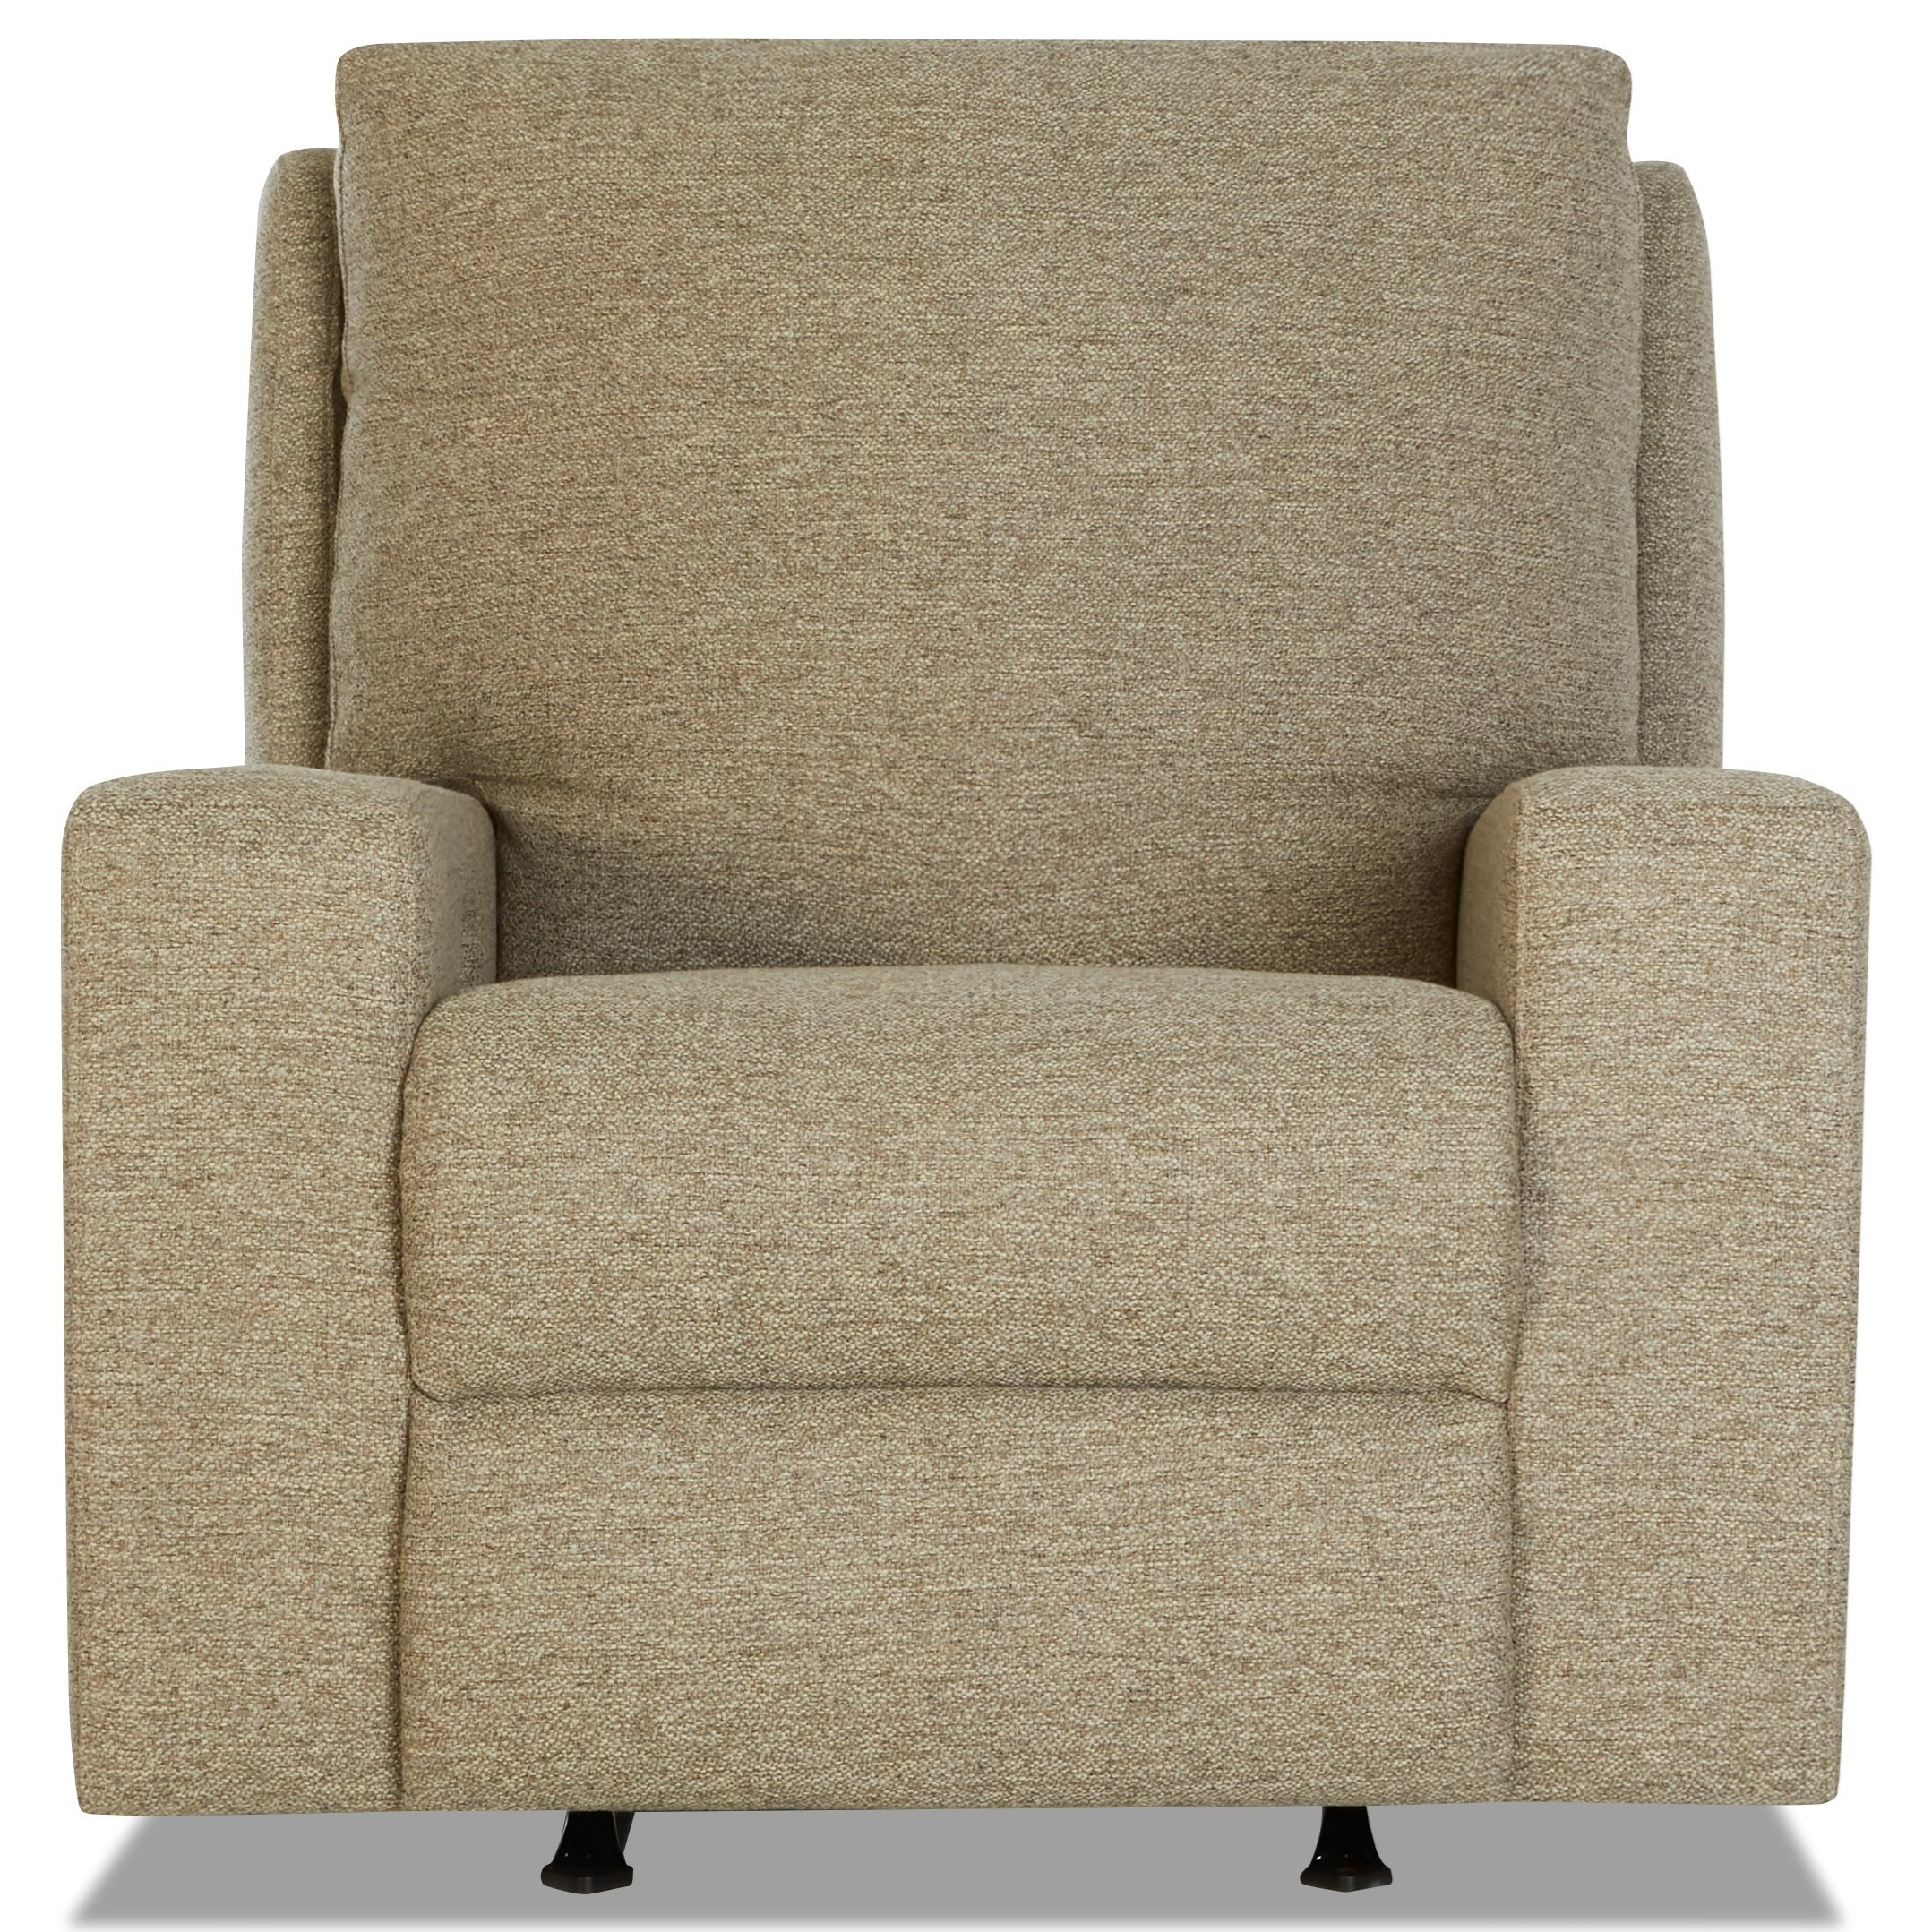 Alliser Power Rocking Recl. Chair w/ Power Headrest by Klaussner at Catalog Outlet